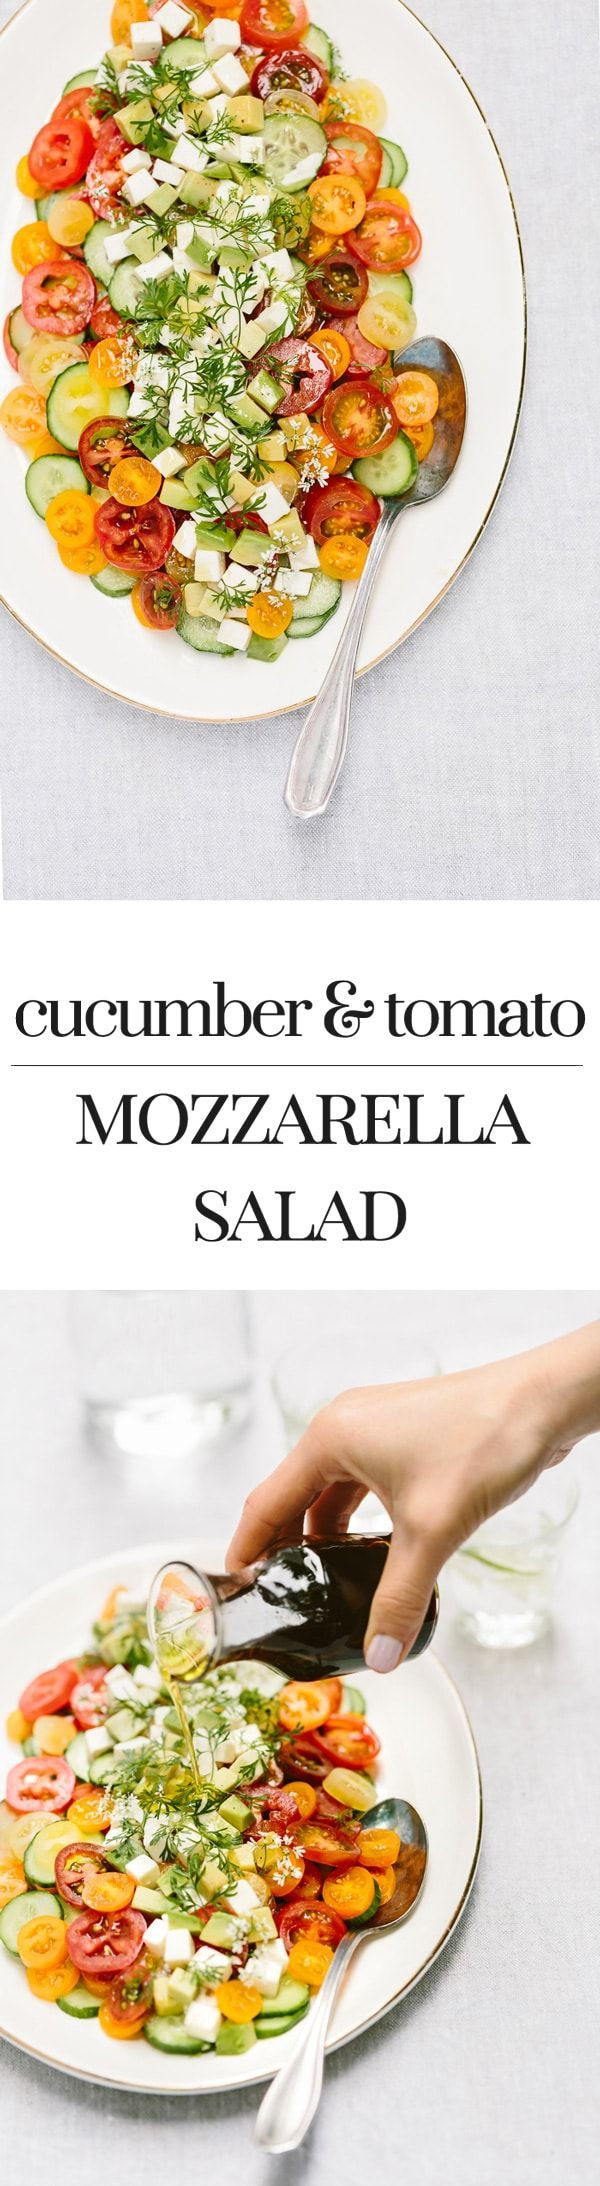 Cucumber Tomato Mozzarella Salad with Homemade Balsamic Vinegar: An easy to make vegetarian salad recipe made with the freshest summer produce. #recipe #salad #tomatoes